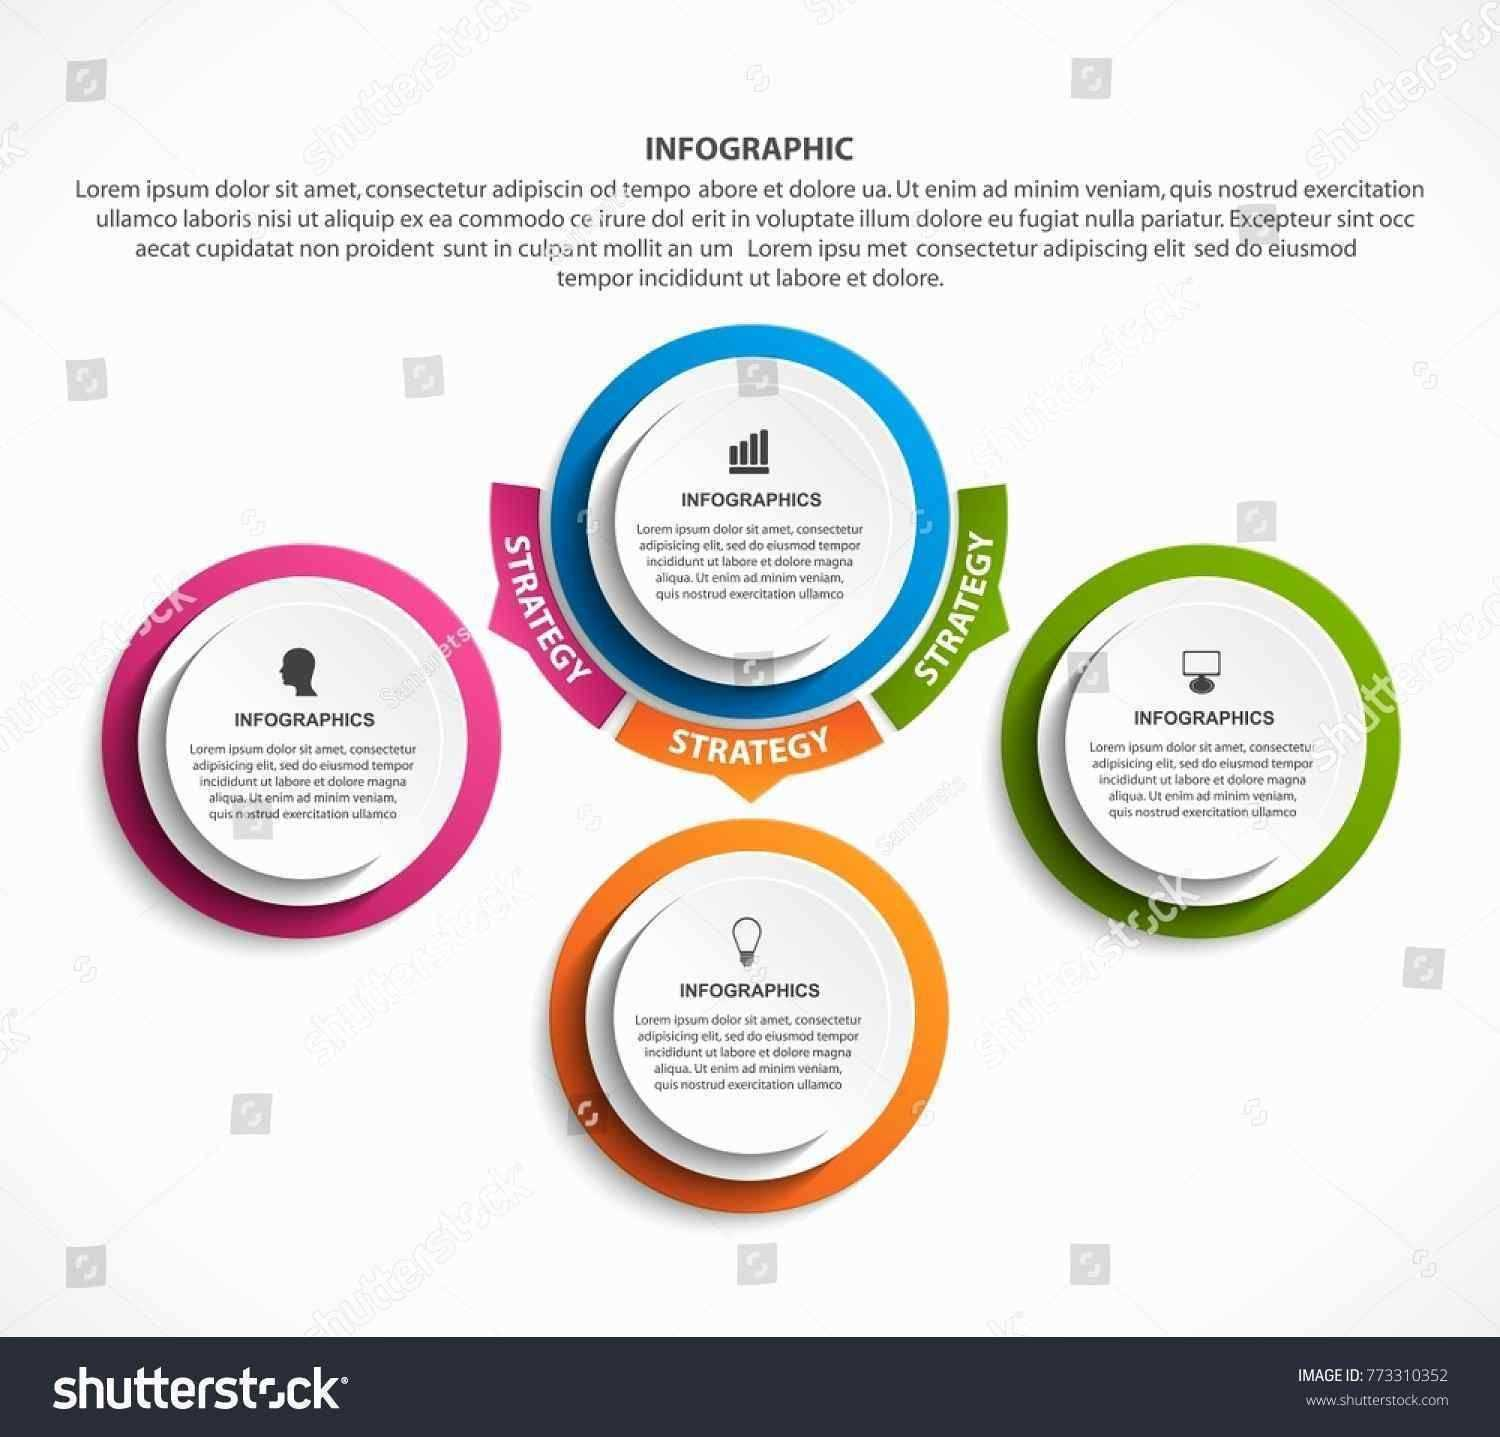 Change Infographic – ˆš ¢Ë†å¡ Change Template Powerpoint Throughout How To Change Template In Powerpoint